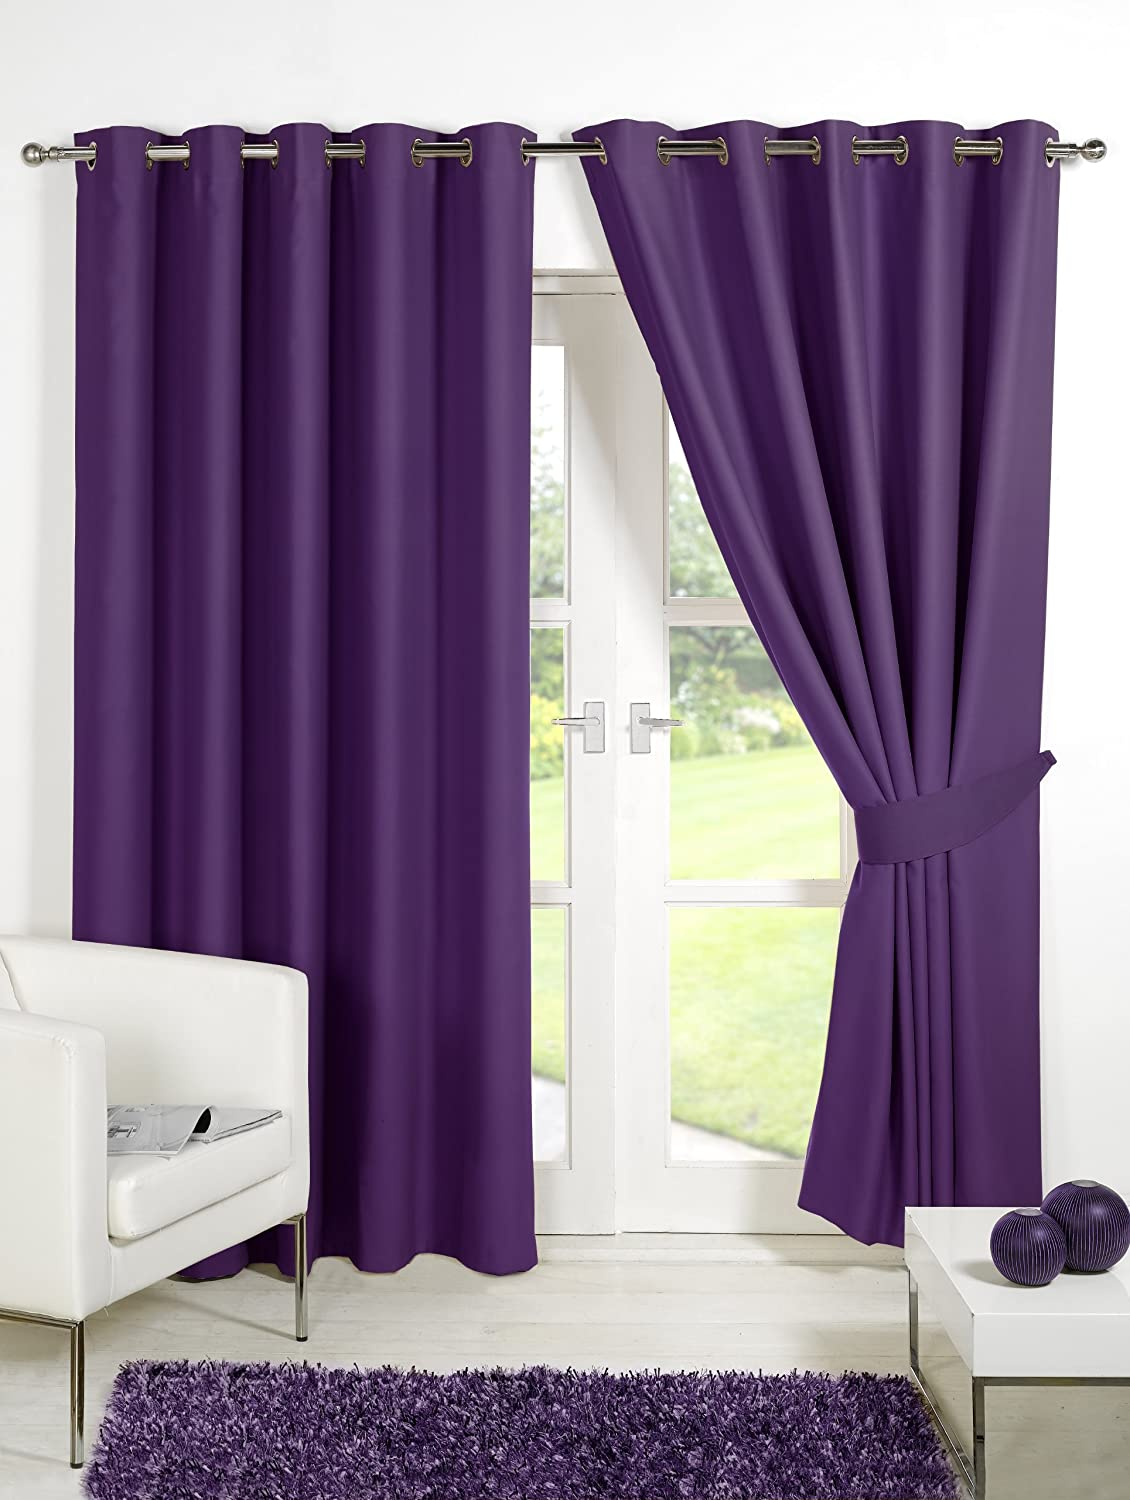 Viceroybedding Pair Of PLUM PURPLE 90 Width X 54 Drop Supersoft Thermal Blackout EYELET RING TOP Curtains Including Matching Tie Backs